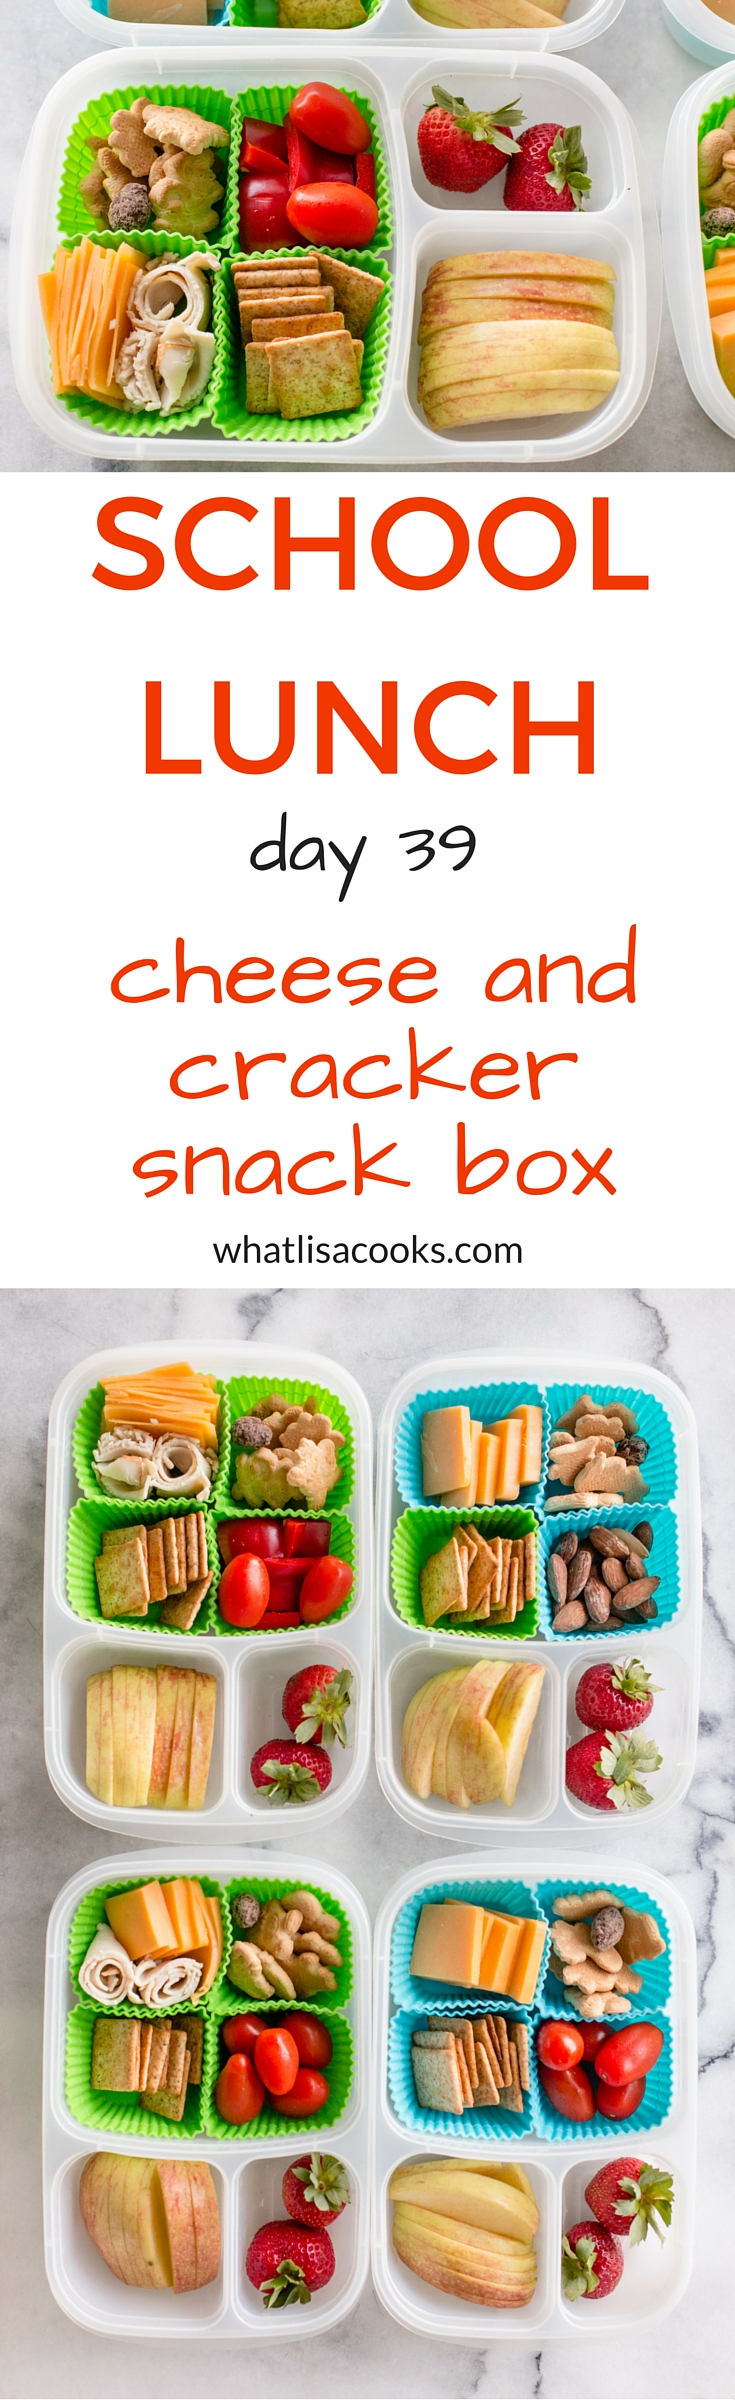 School lunch - cheese and cracker snack box - like a homemade lunchable. WhatLisaCooks.com